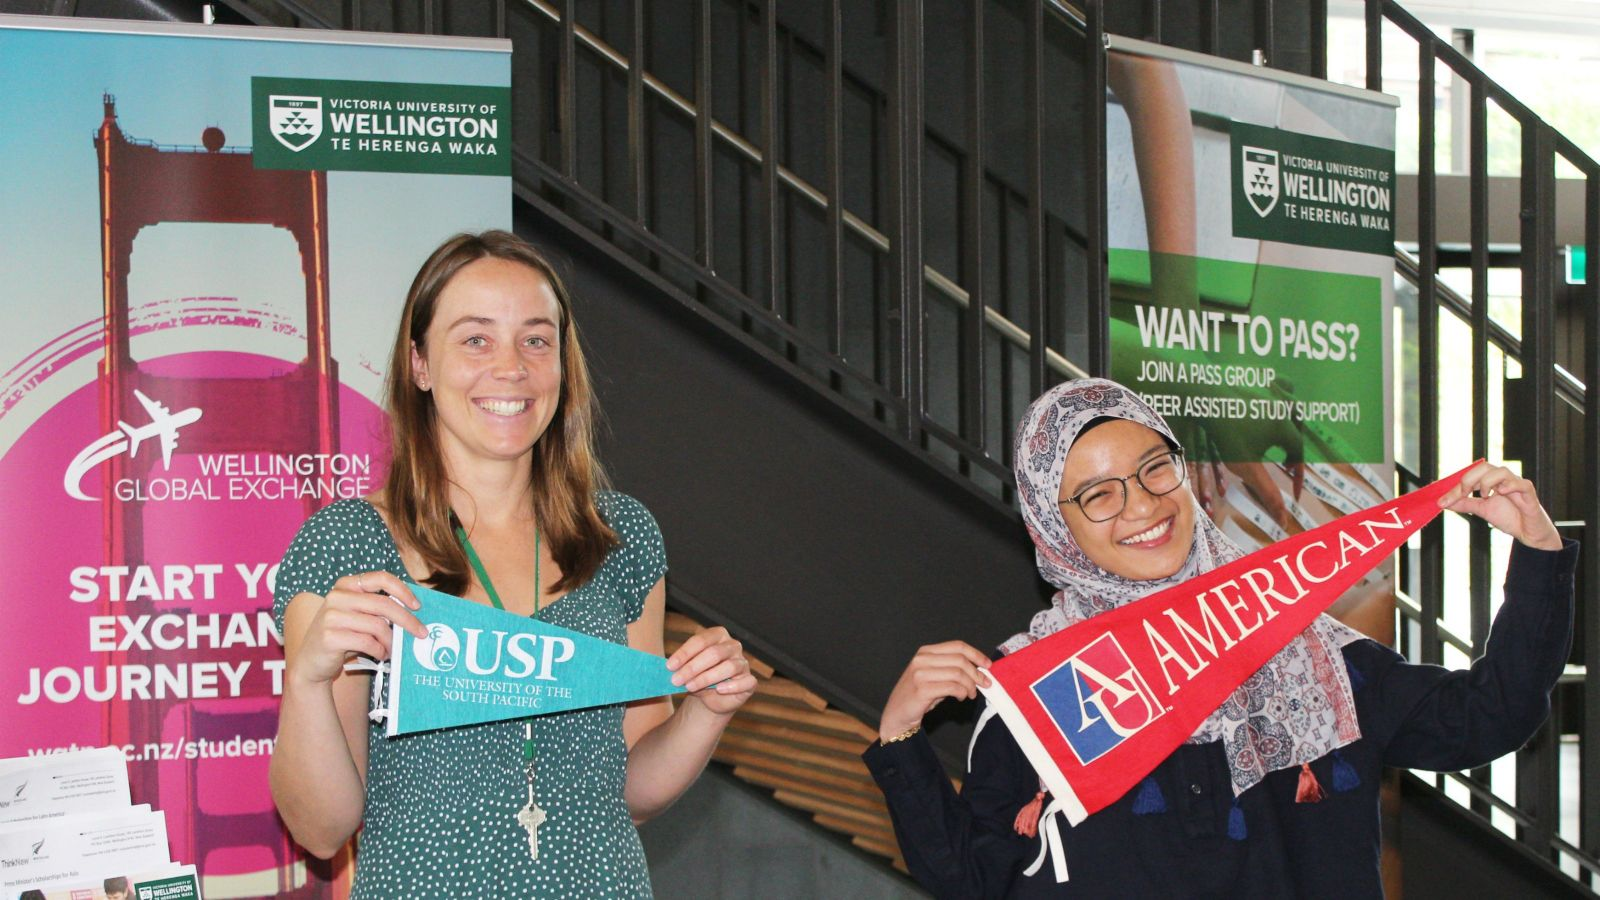 Staff member Grace Patterson and student holding pennants of exchange partner universities at the exchange booth during the International Student Orientation Expo in Trimester 1, 2020.